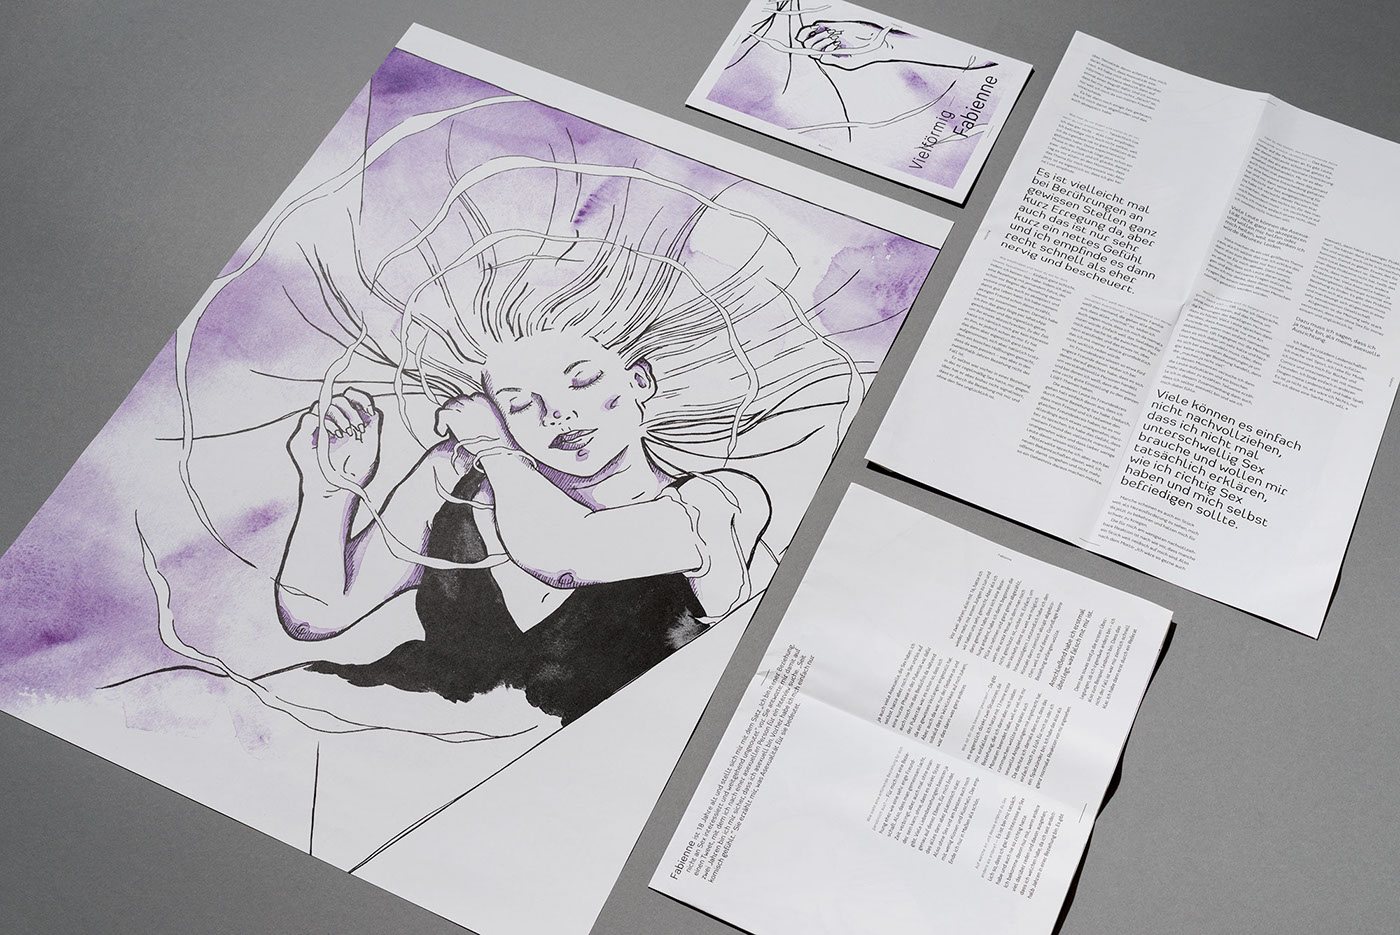 editorial design  ILLUSTRATION  graphicdesign Diversity asexuality transsexuality dwarfism feminism equality Zines